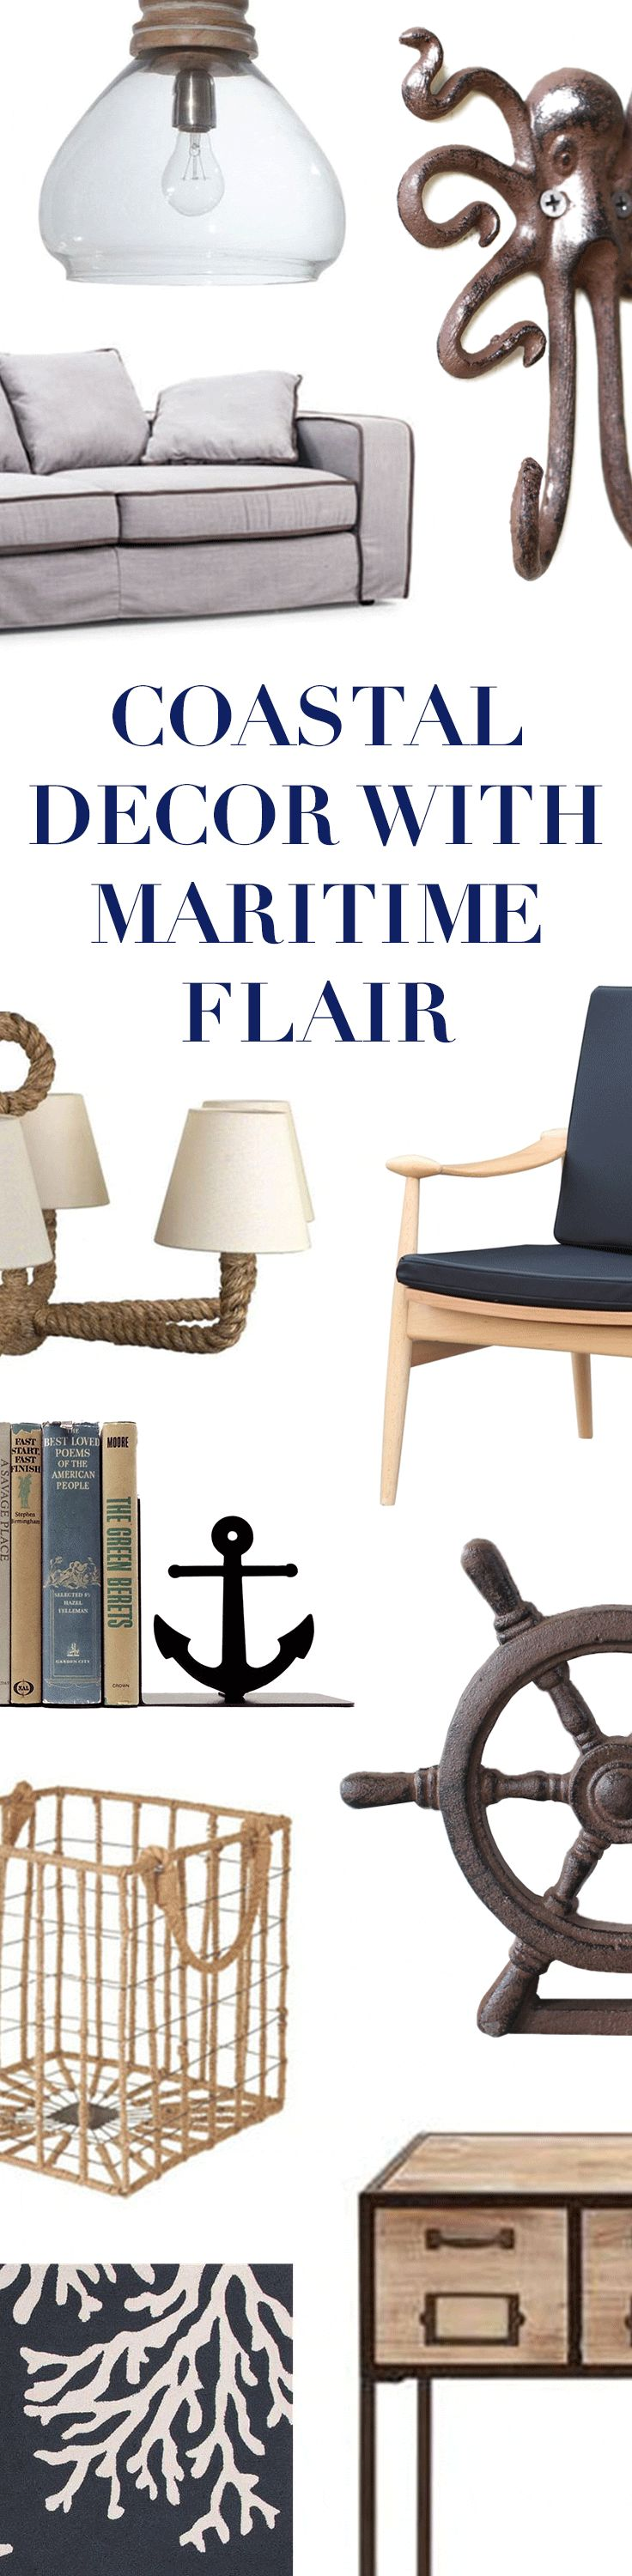 189 best images about furniture and accessories on pinterest